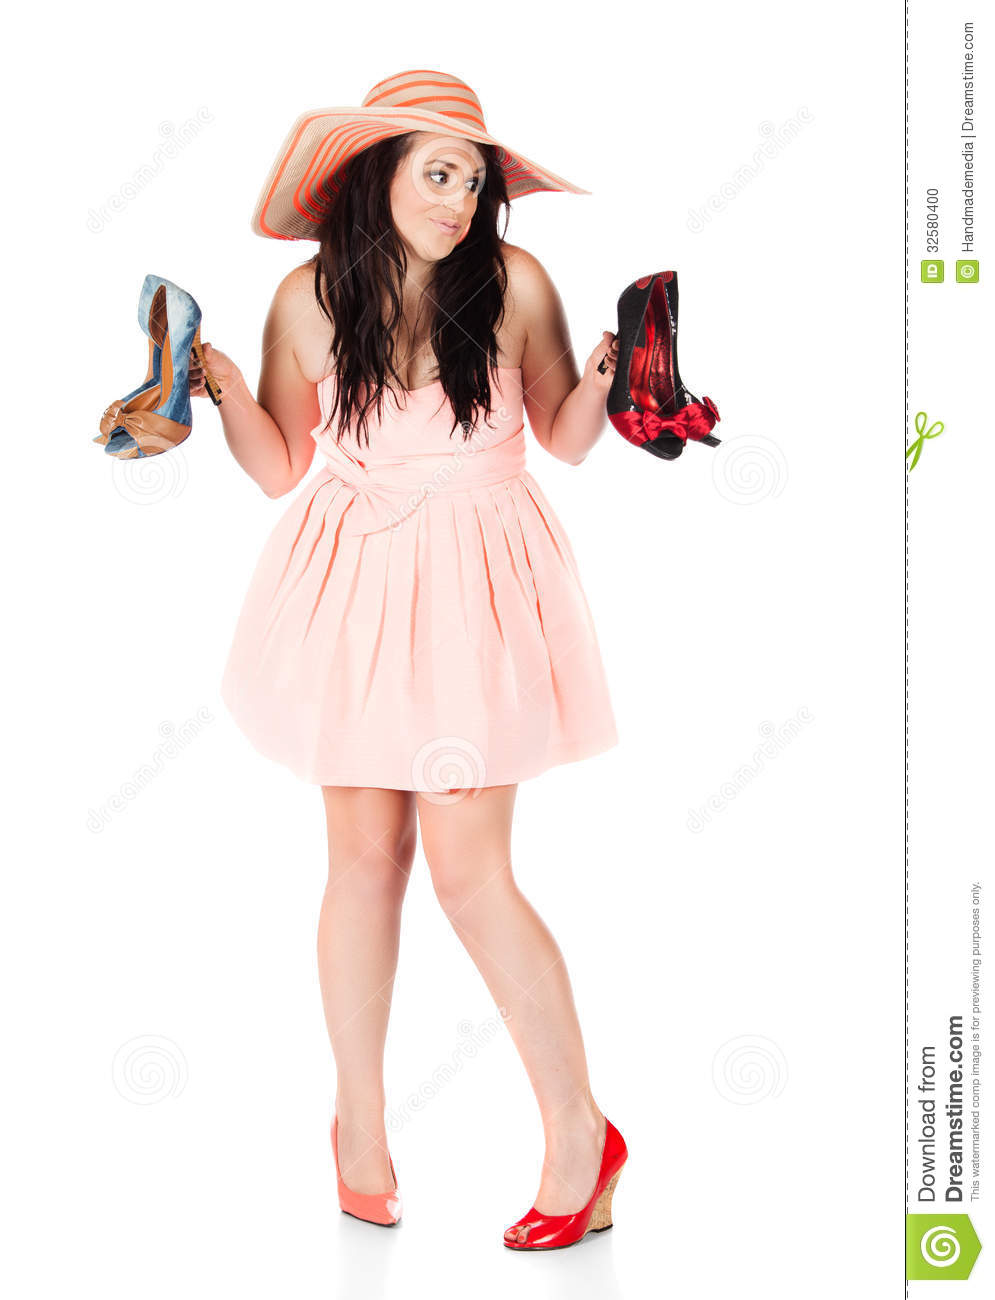 Cute fashion girl stock photo. Image of color, face ...